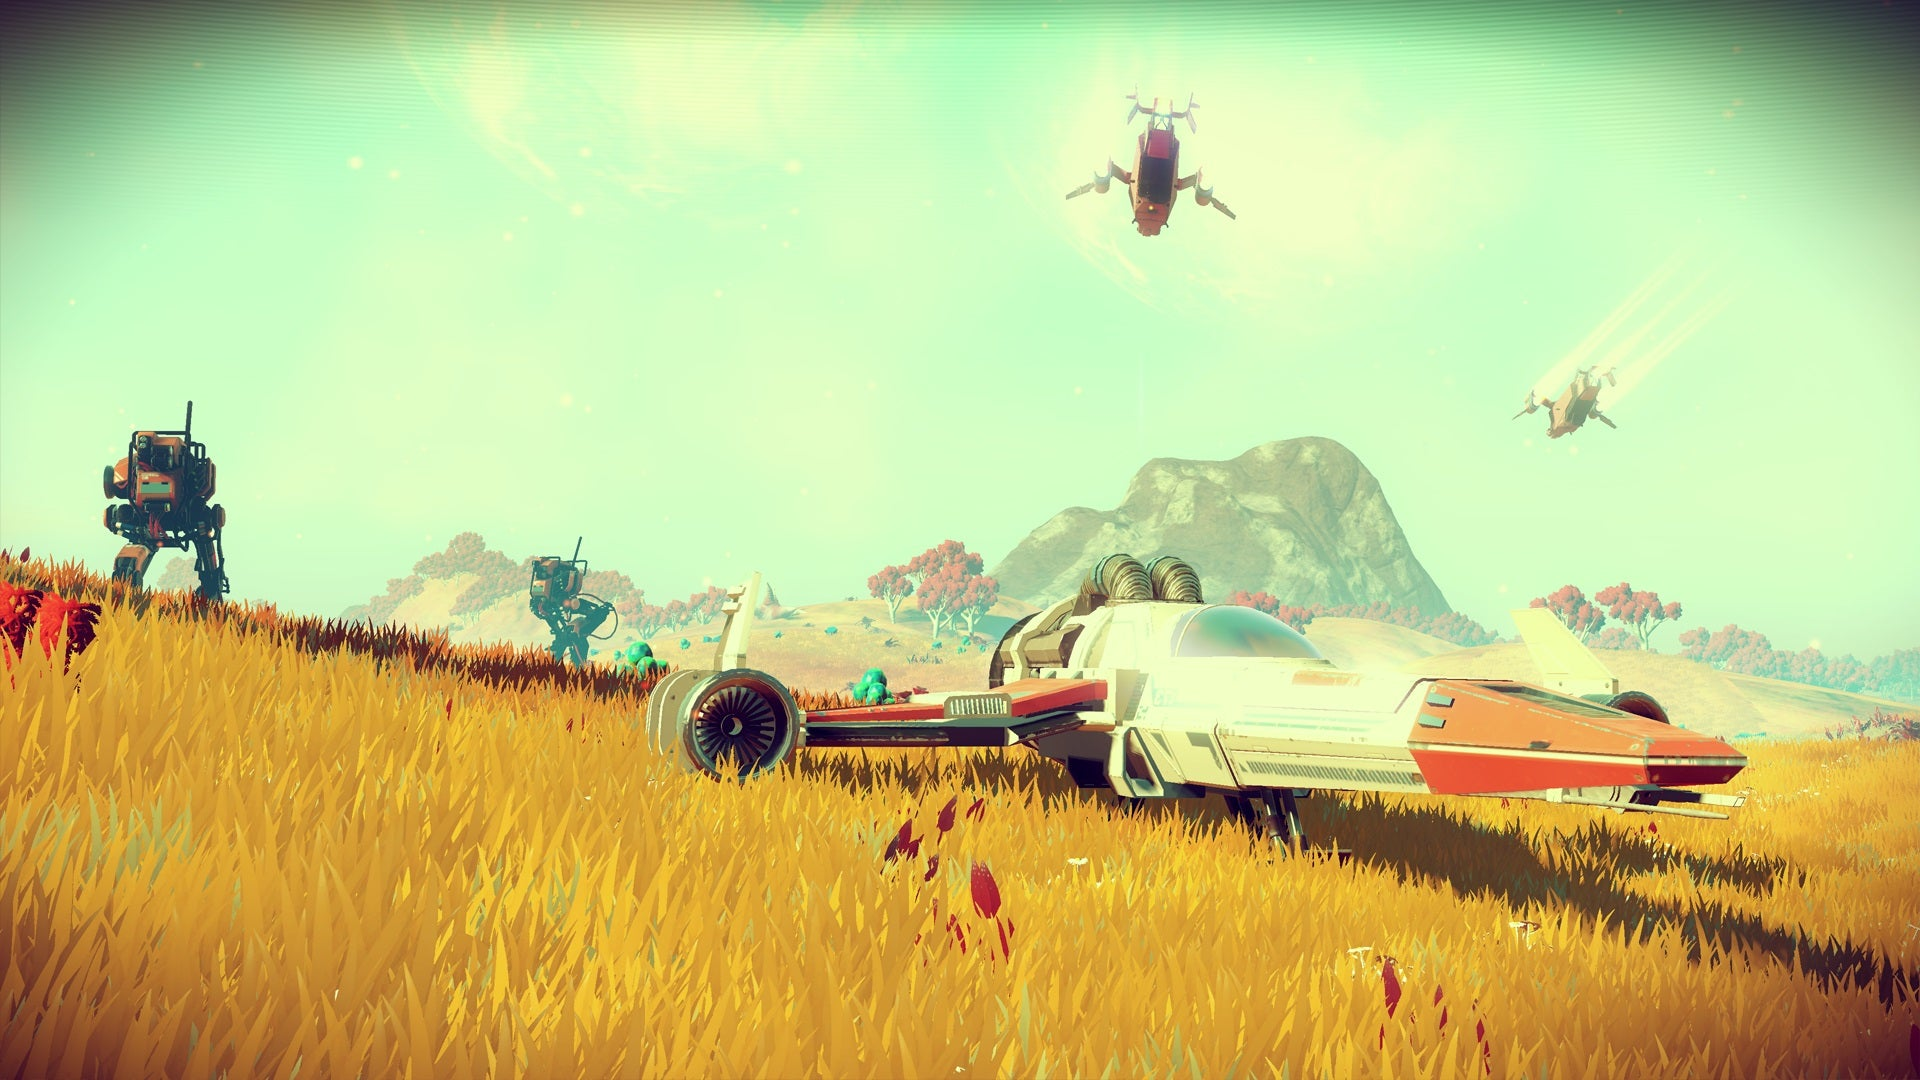 No Man's Sky: 15 Tips & Tricks The Game Doesn't Tell You